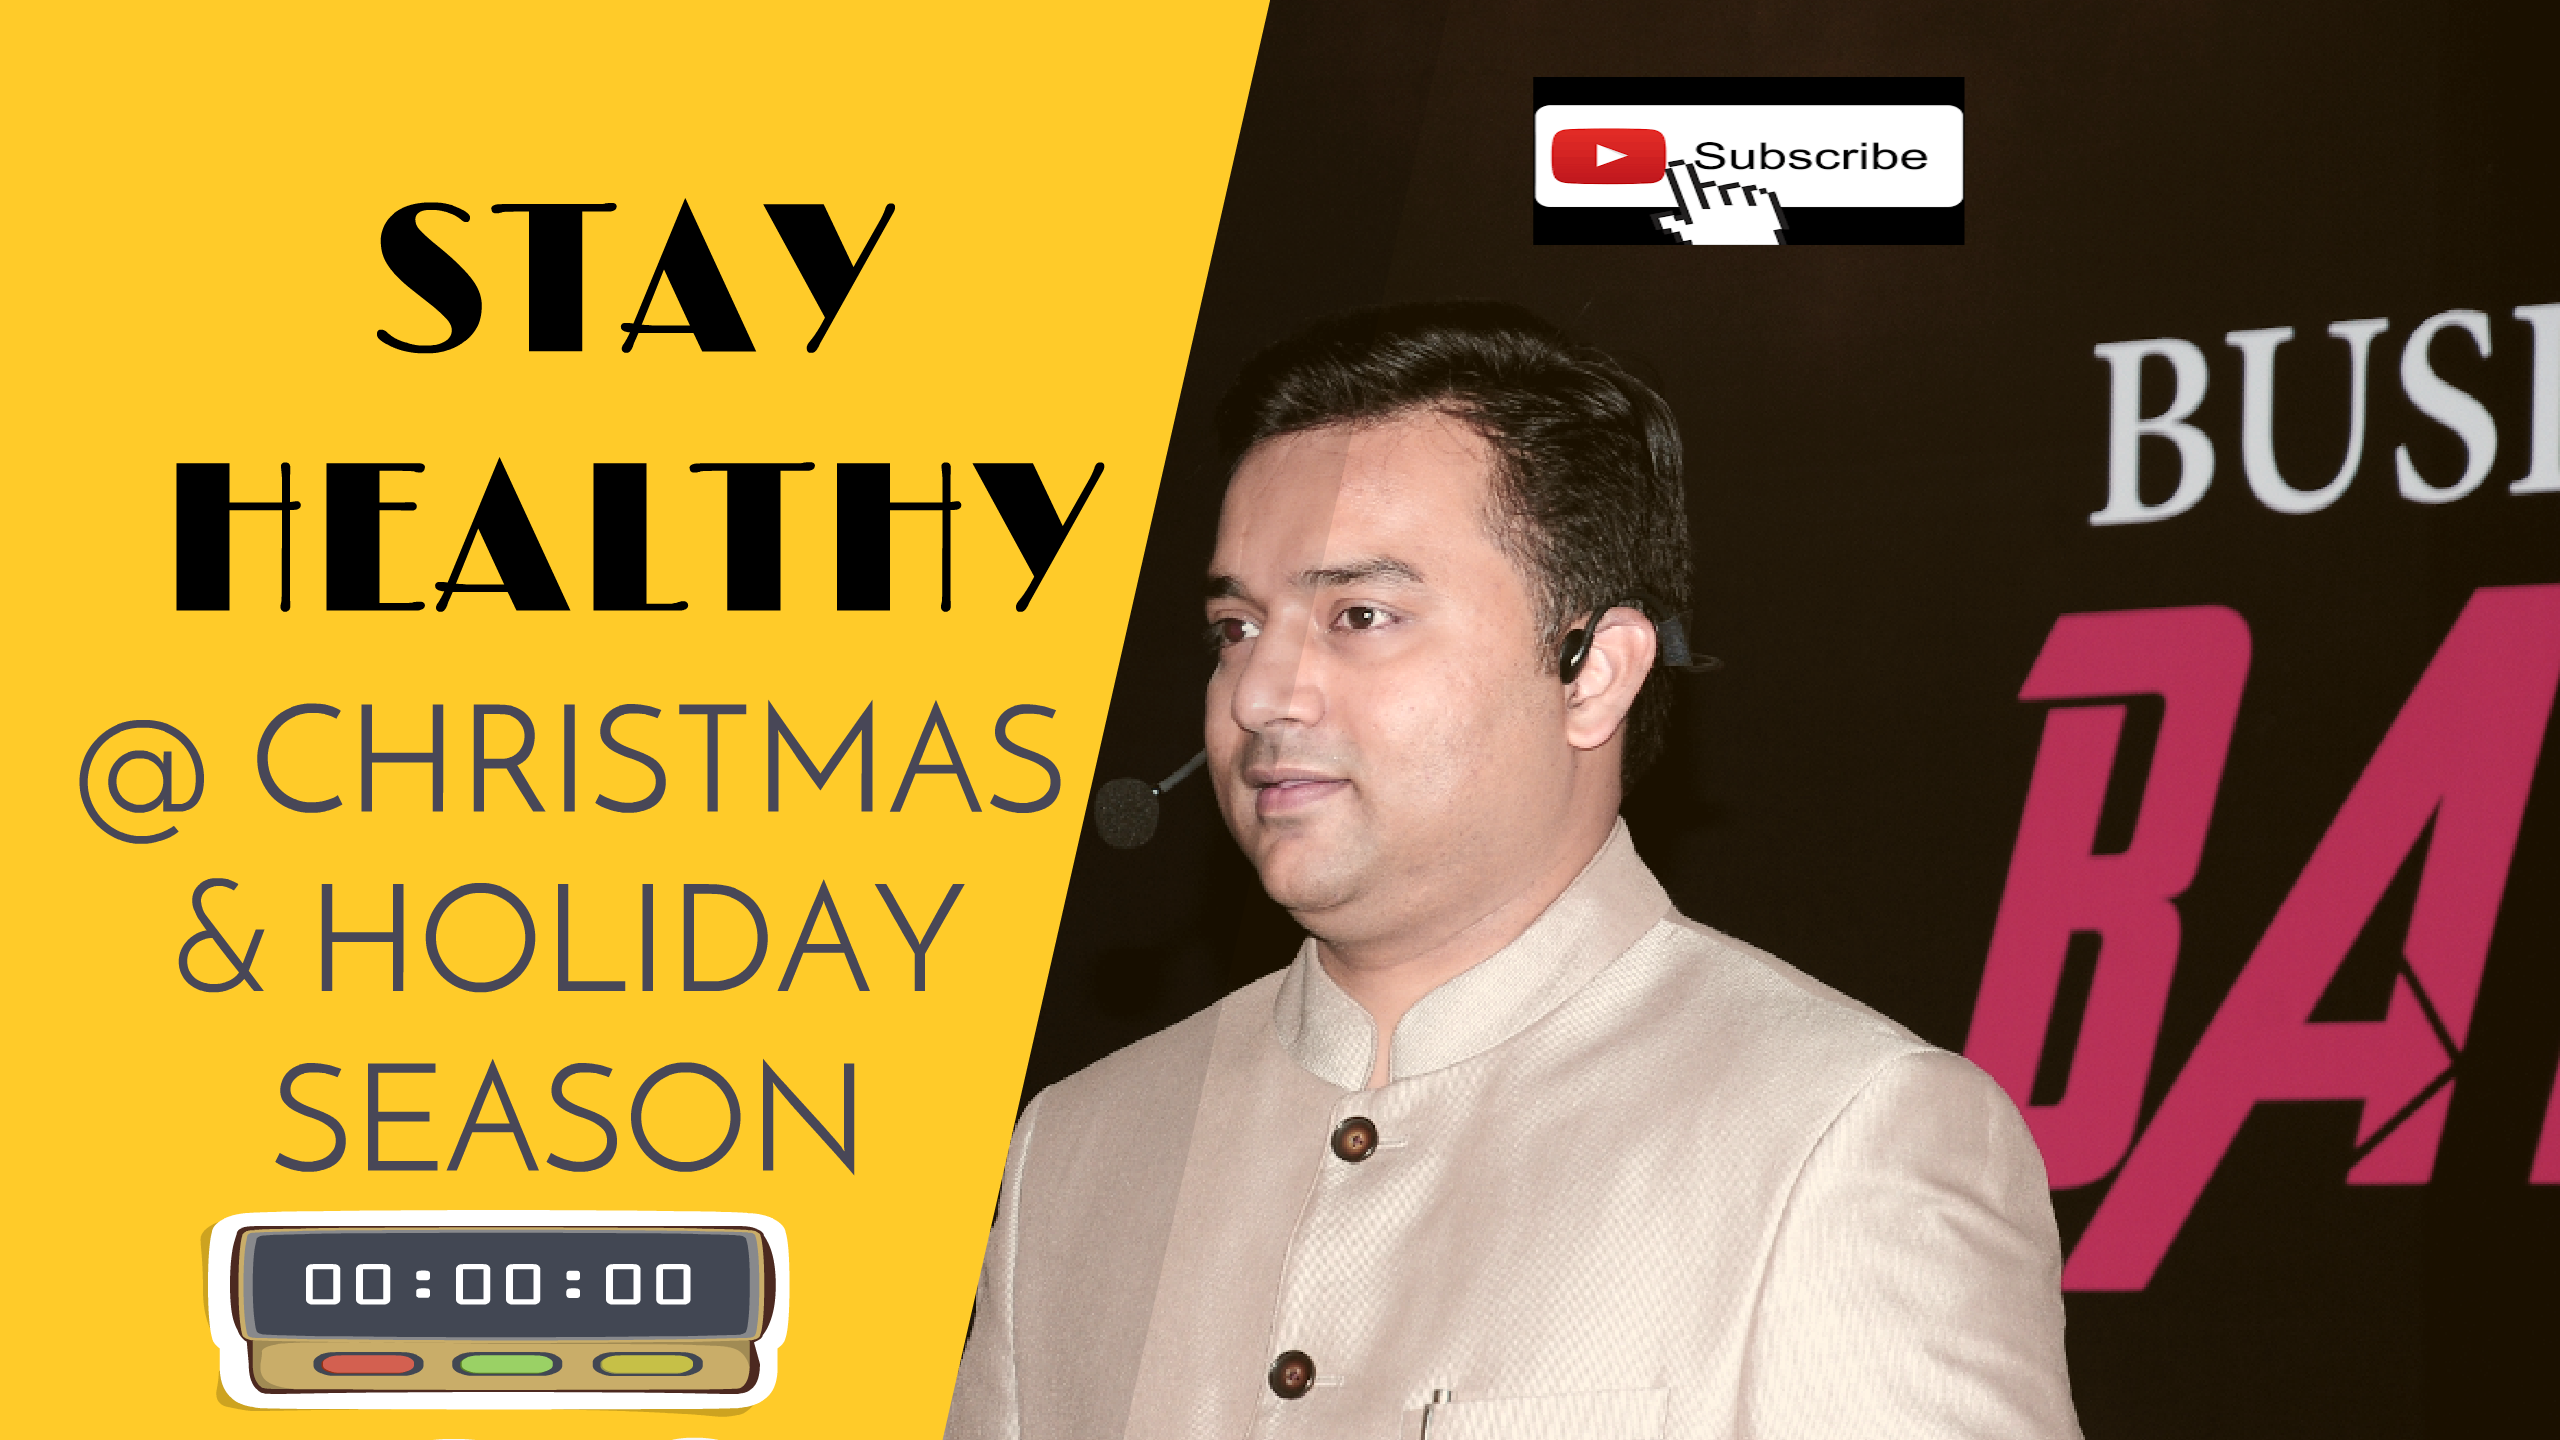 How to stay Healthy during the Christmas and Holiday season?